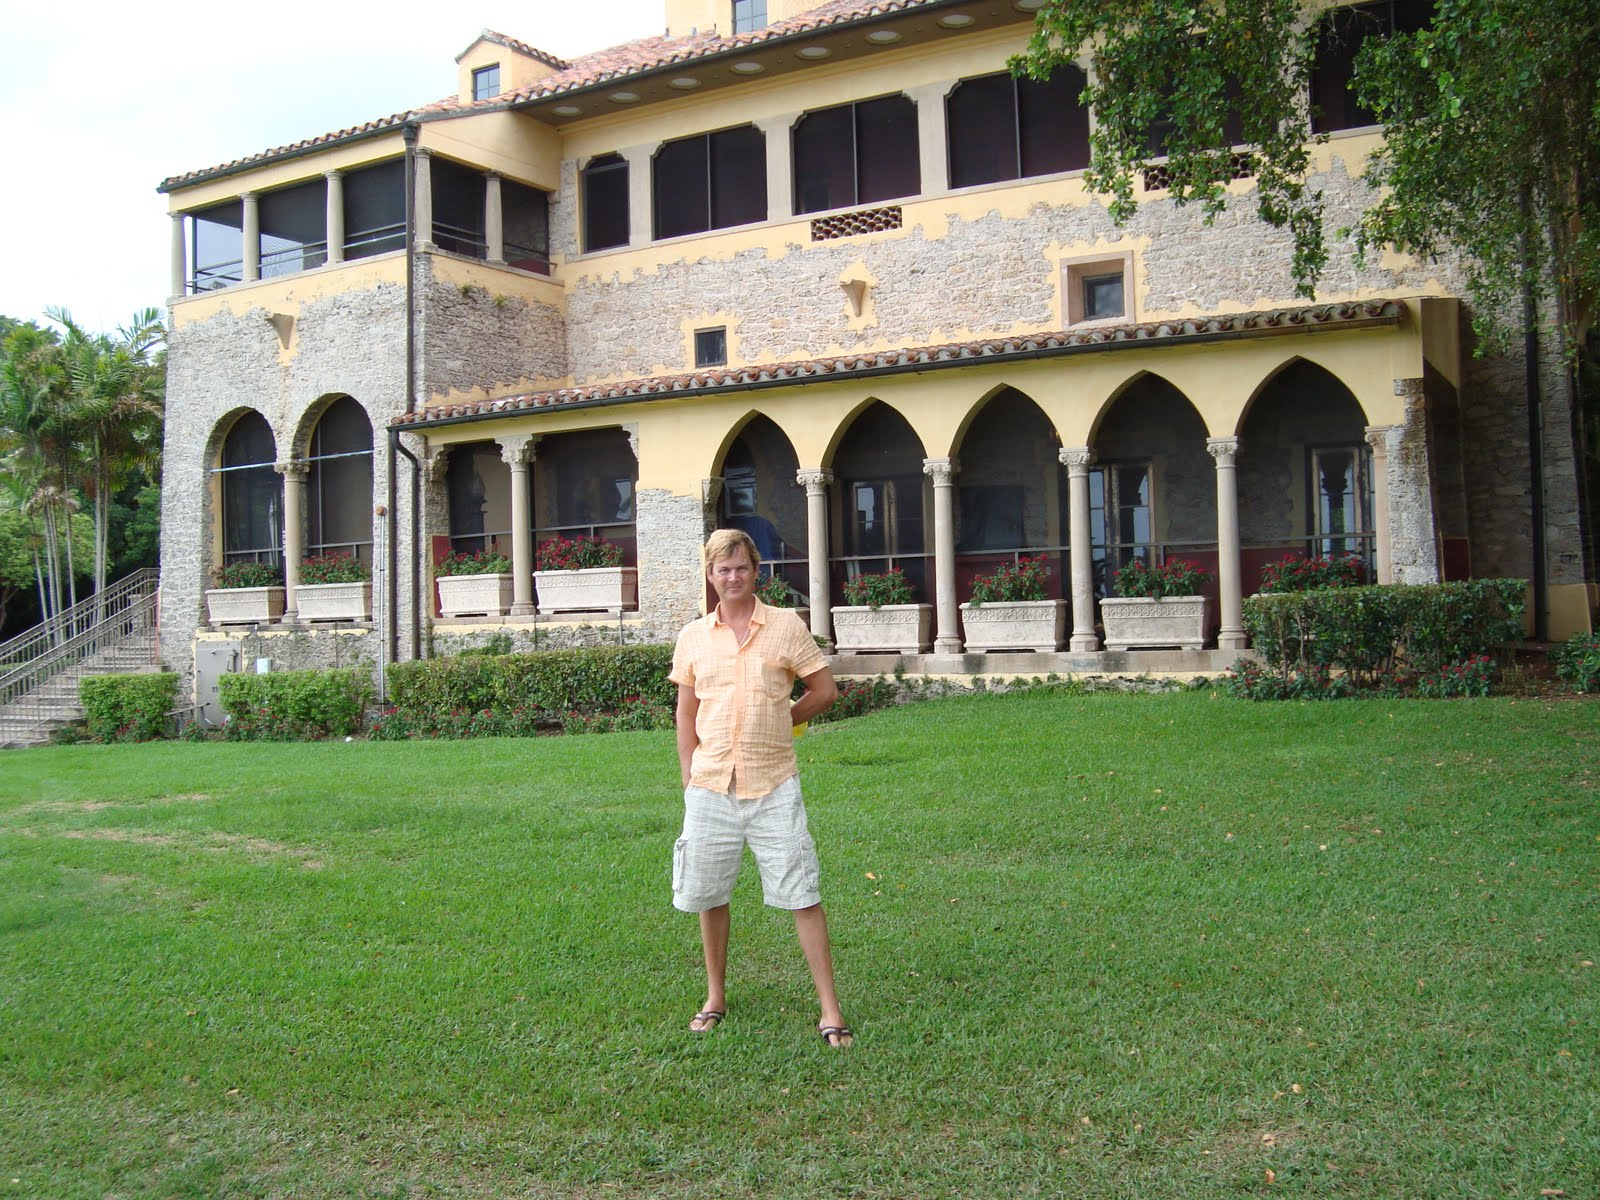 dean farris style deering estate at cutler south miami i feel very palm beach here behind the house those arches are so mizner